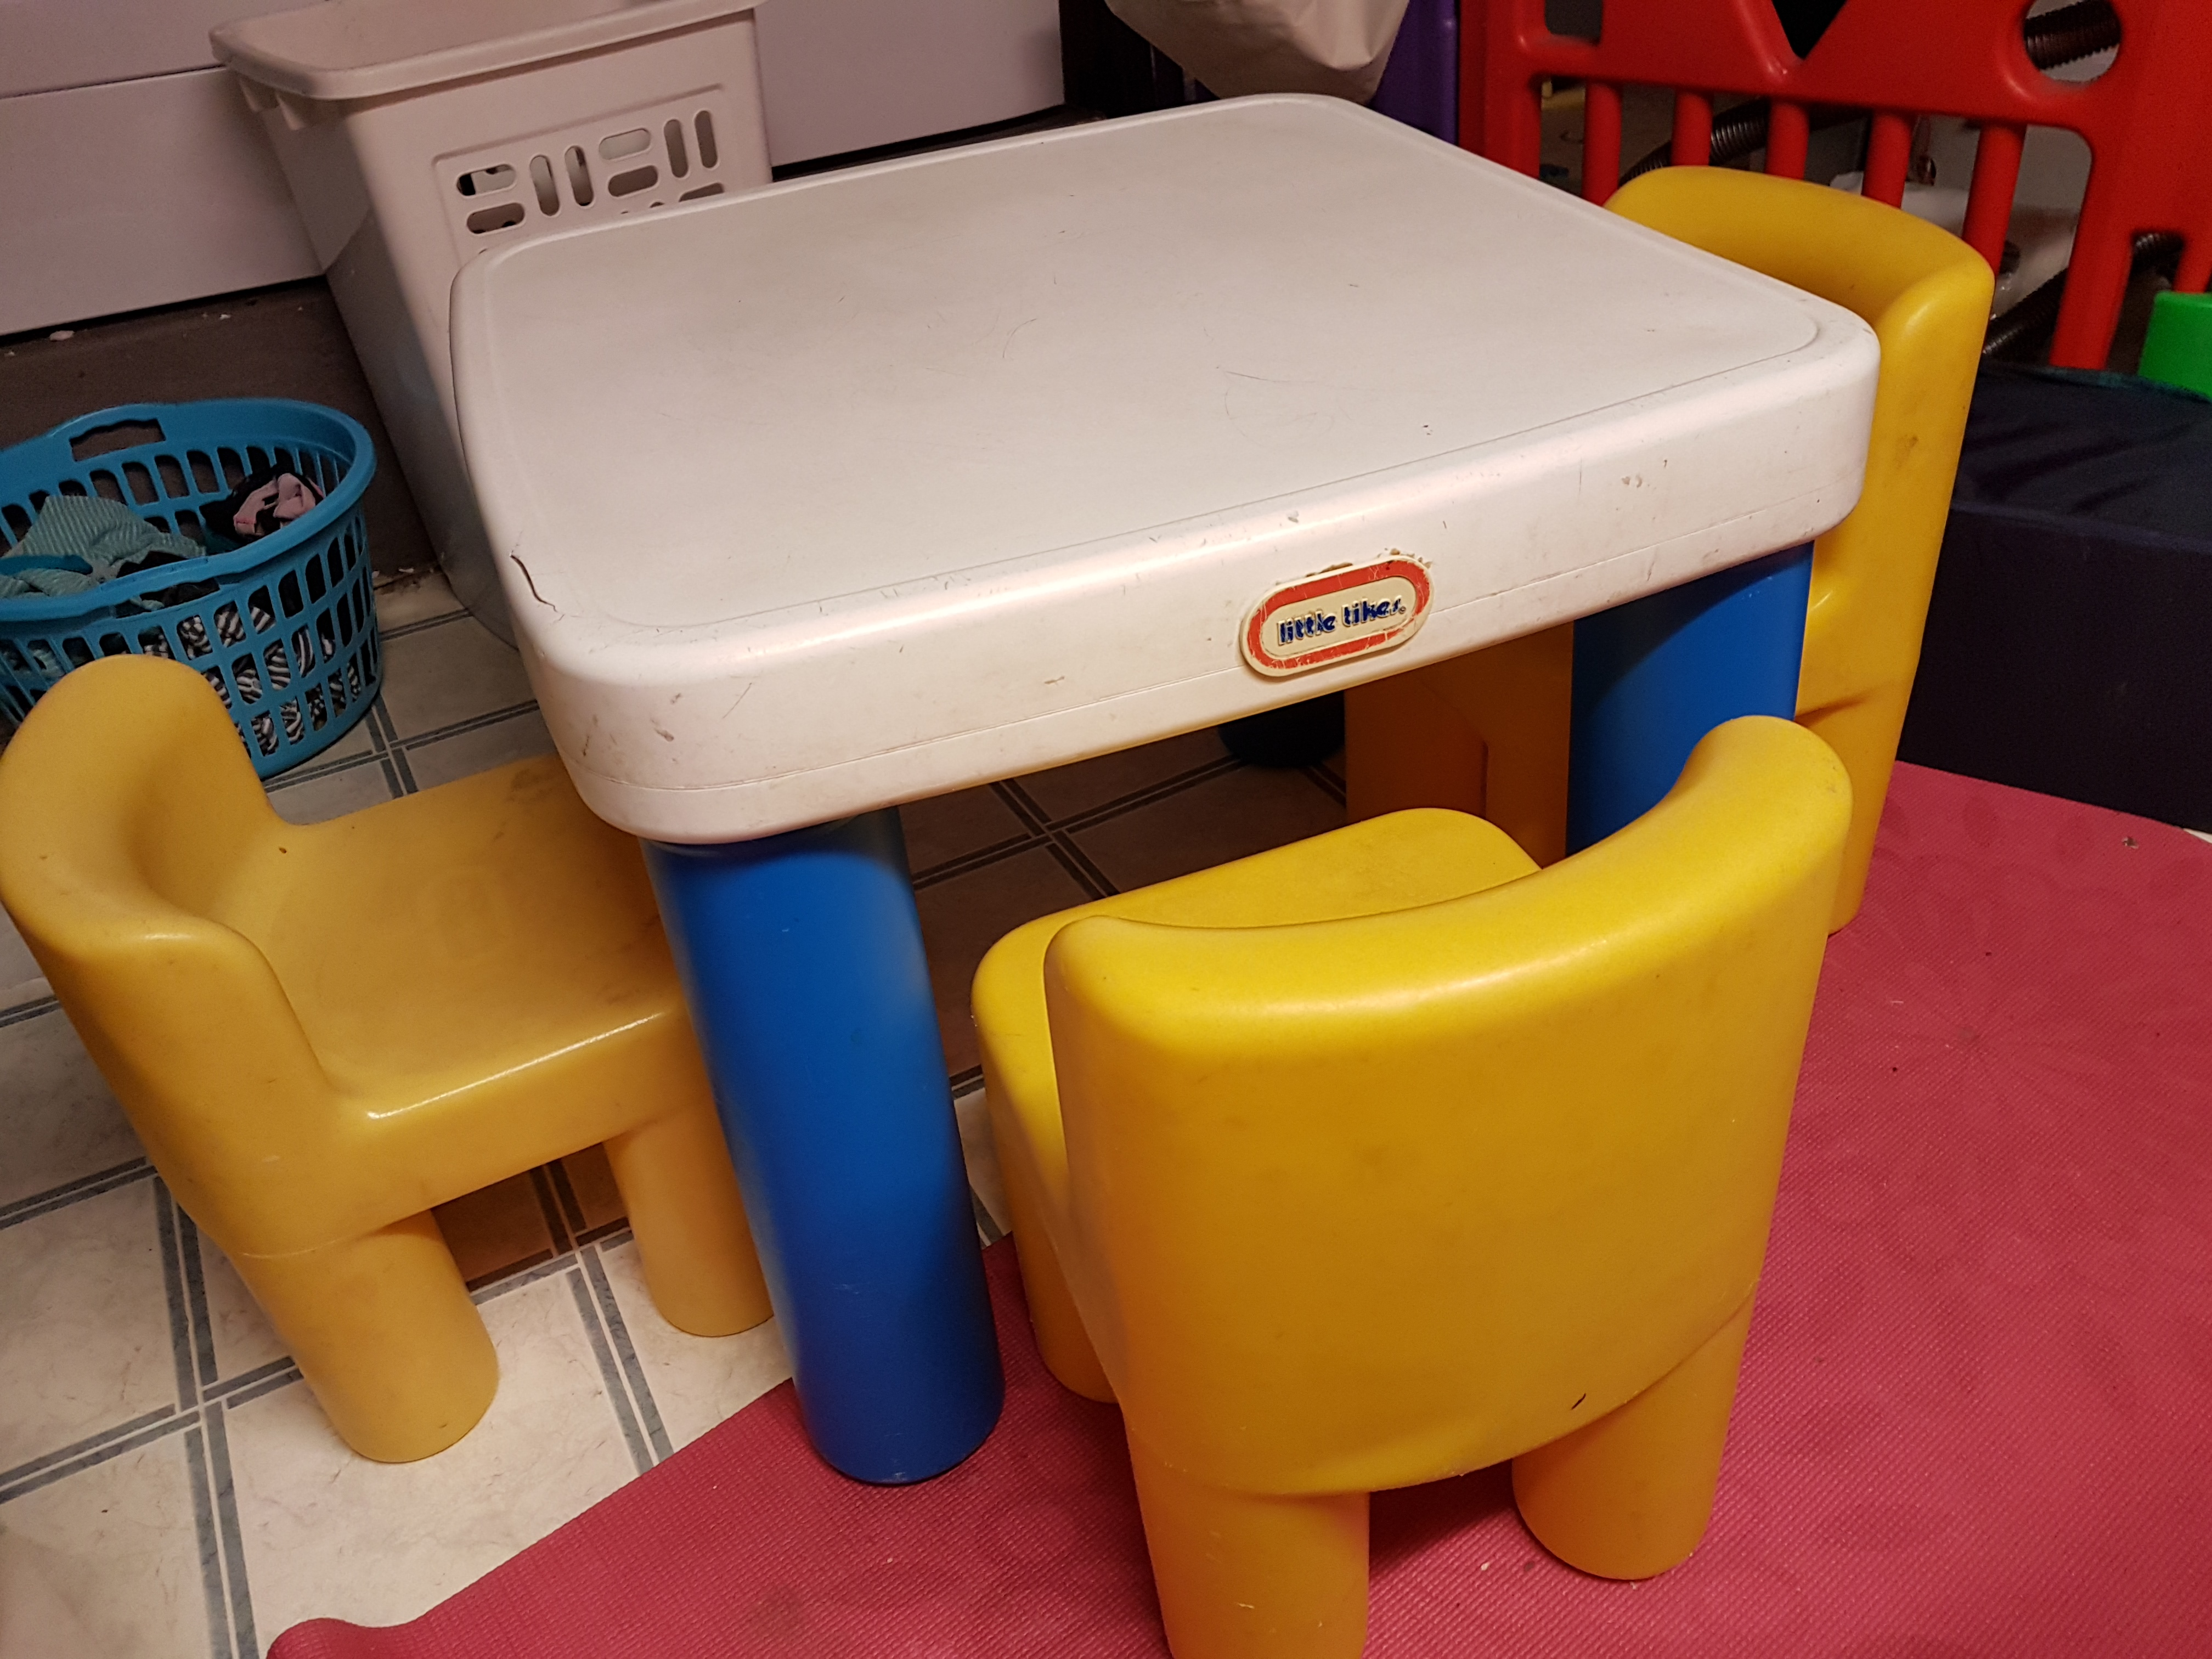 Little times table and 3 chairs